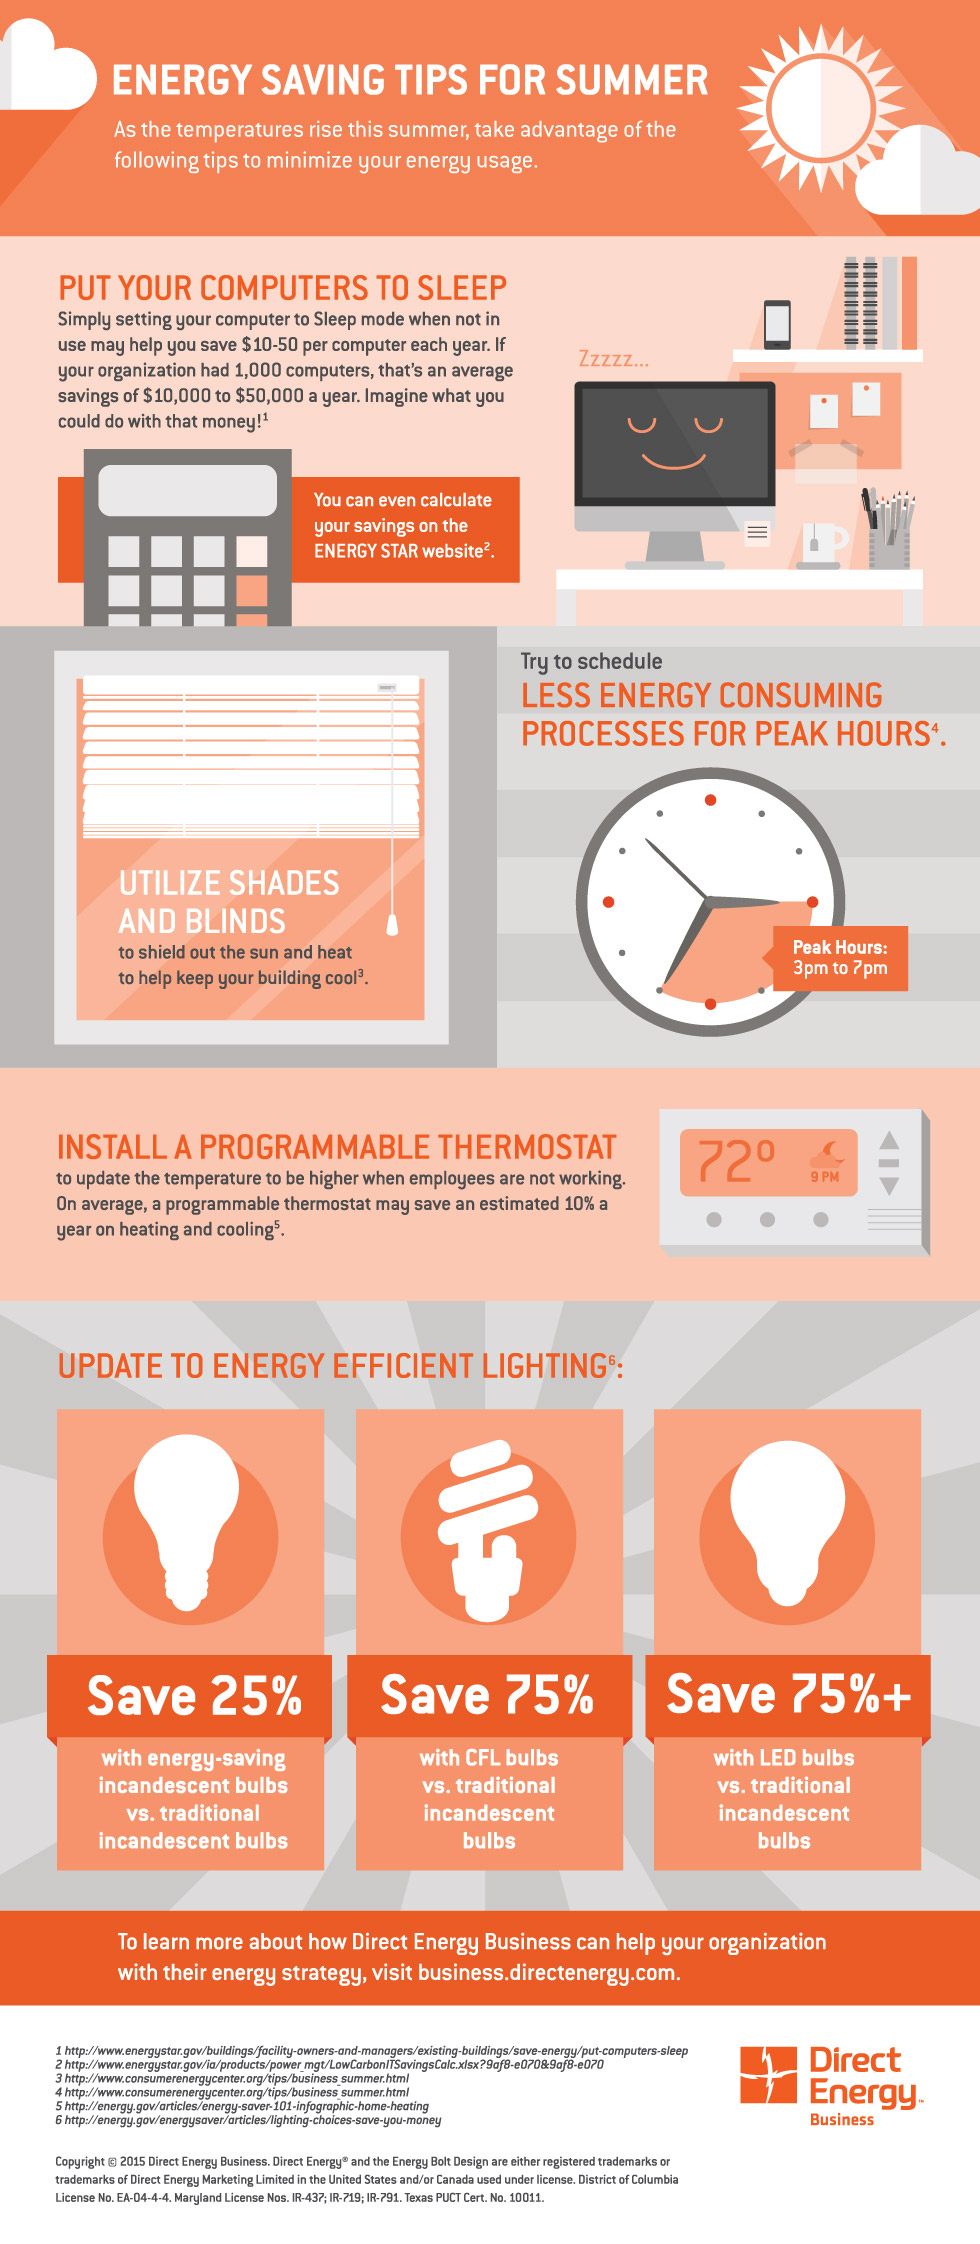 Energy Saving Tips For Summer energy savings tips for summer | direct energy business